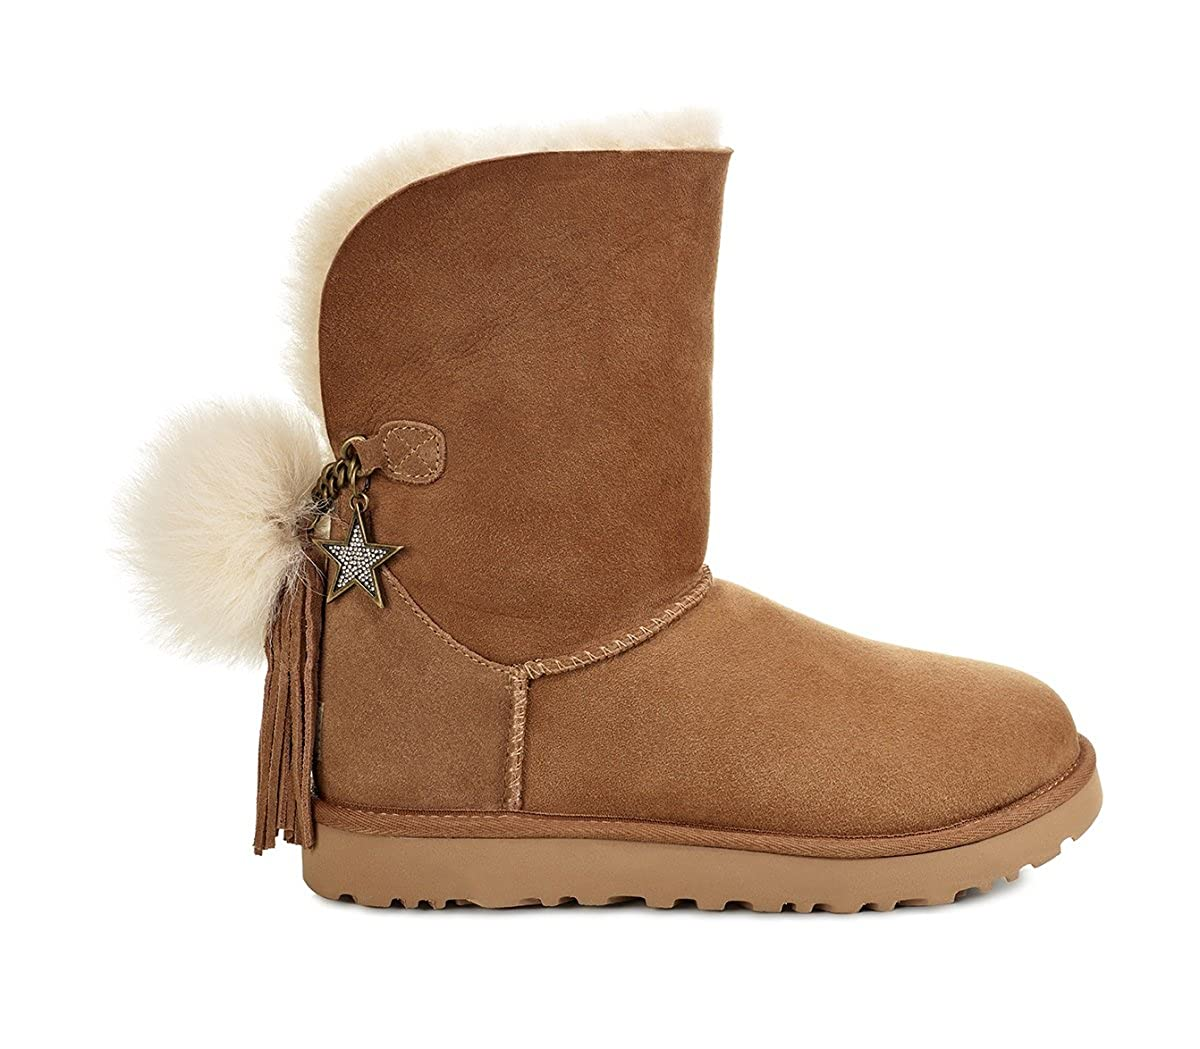 555be86fac4 UGG Womens Classic Charm Boot: Buy Online at Low Prices in India ...